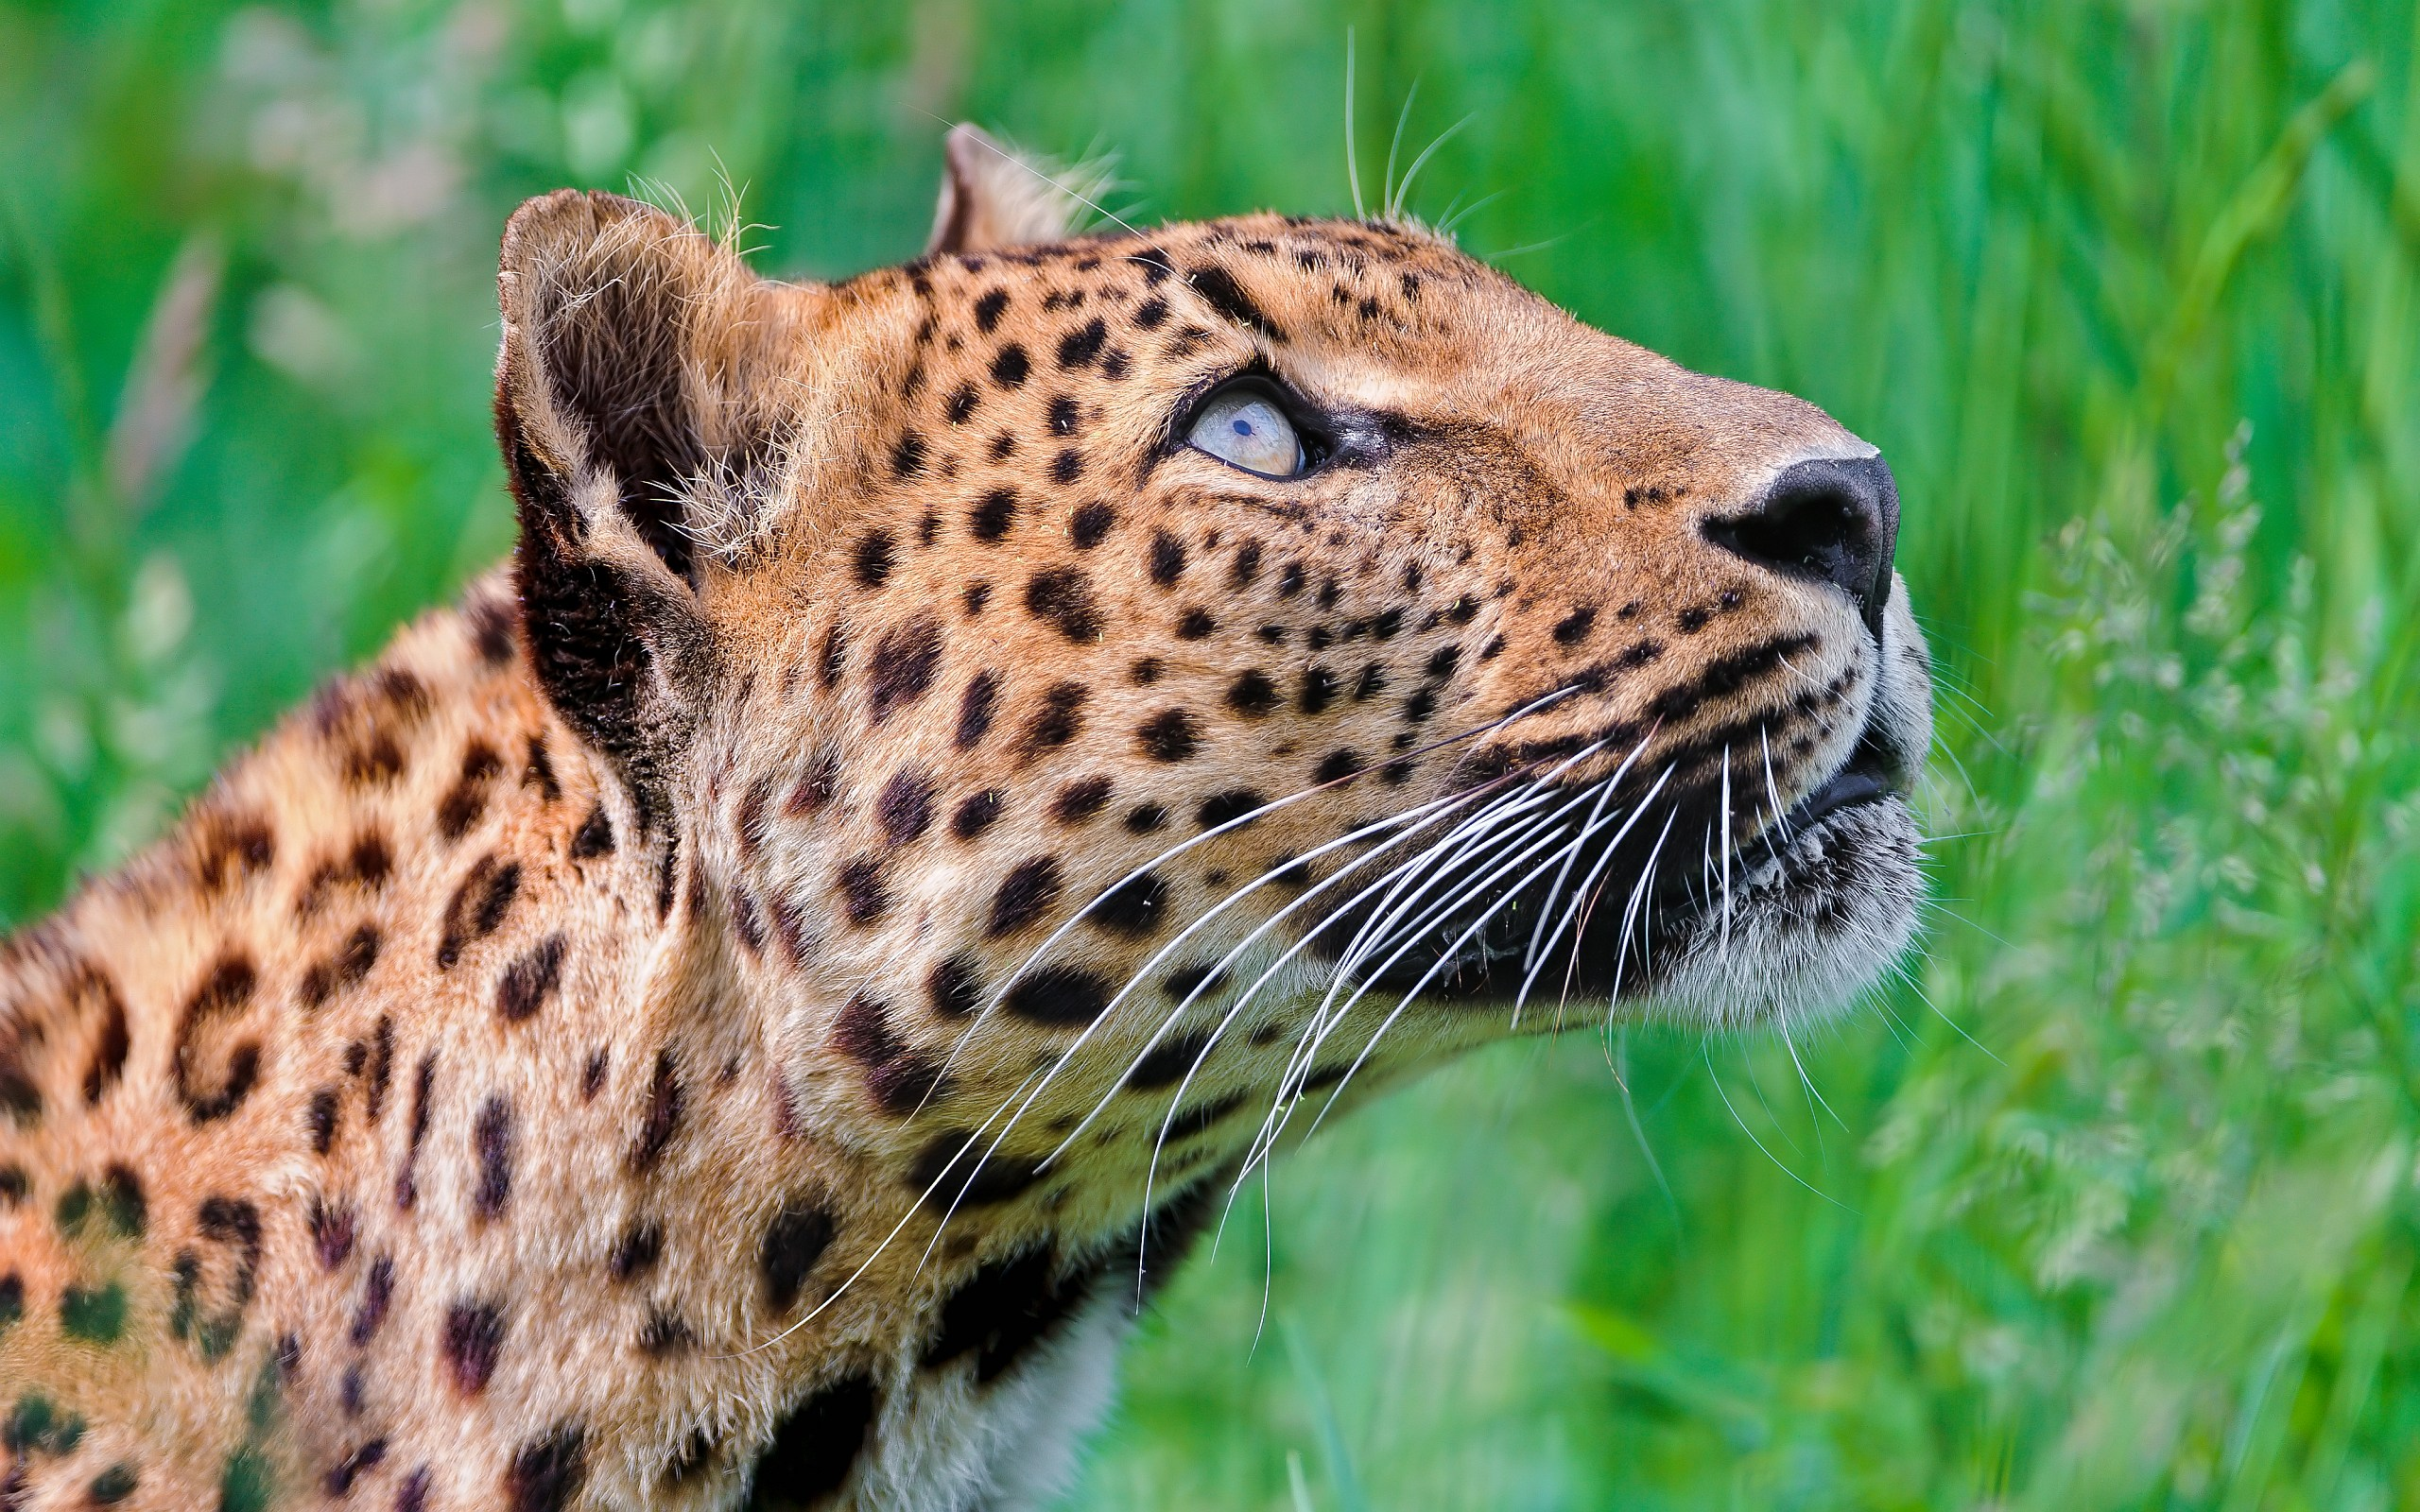 Looking up Leopard Wallpapers Pictures Photos Images. «